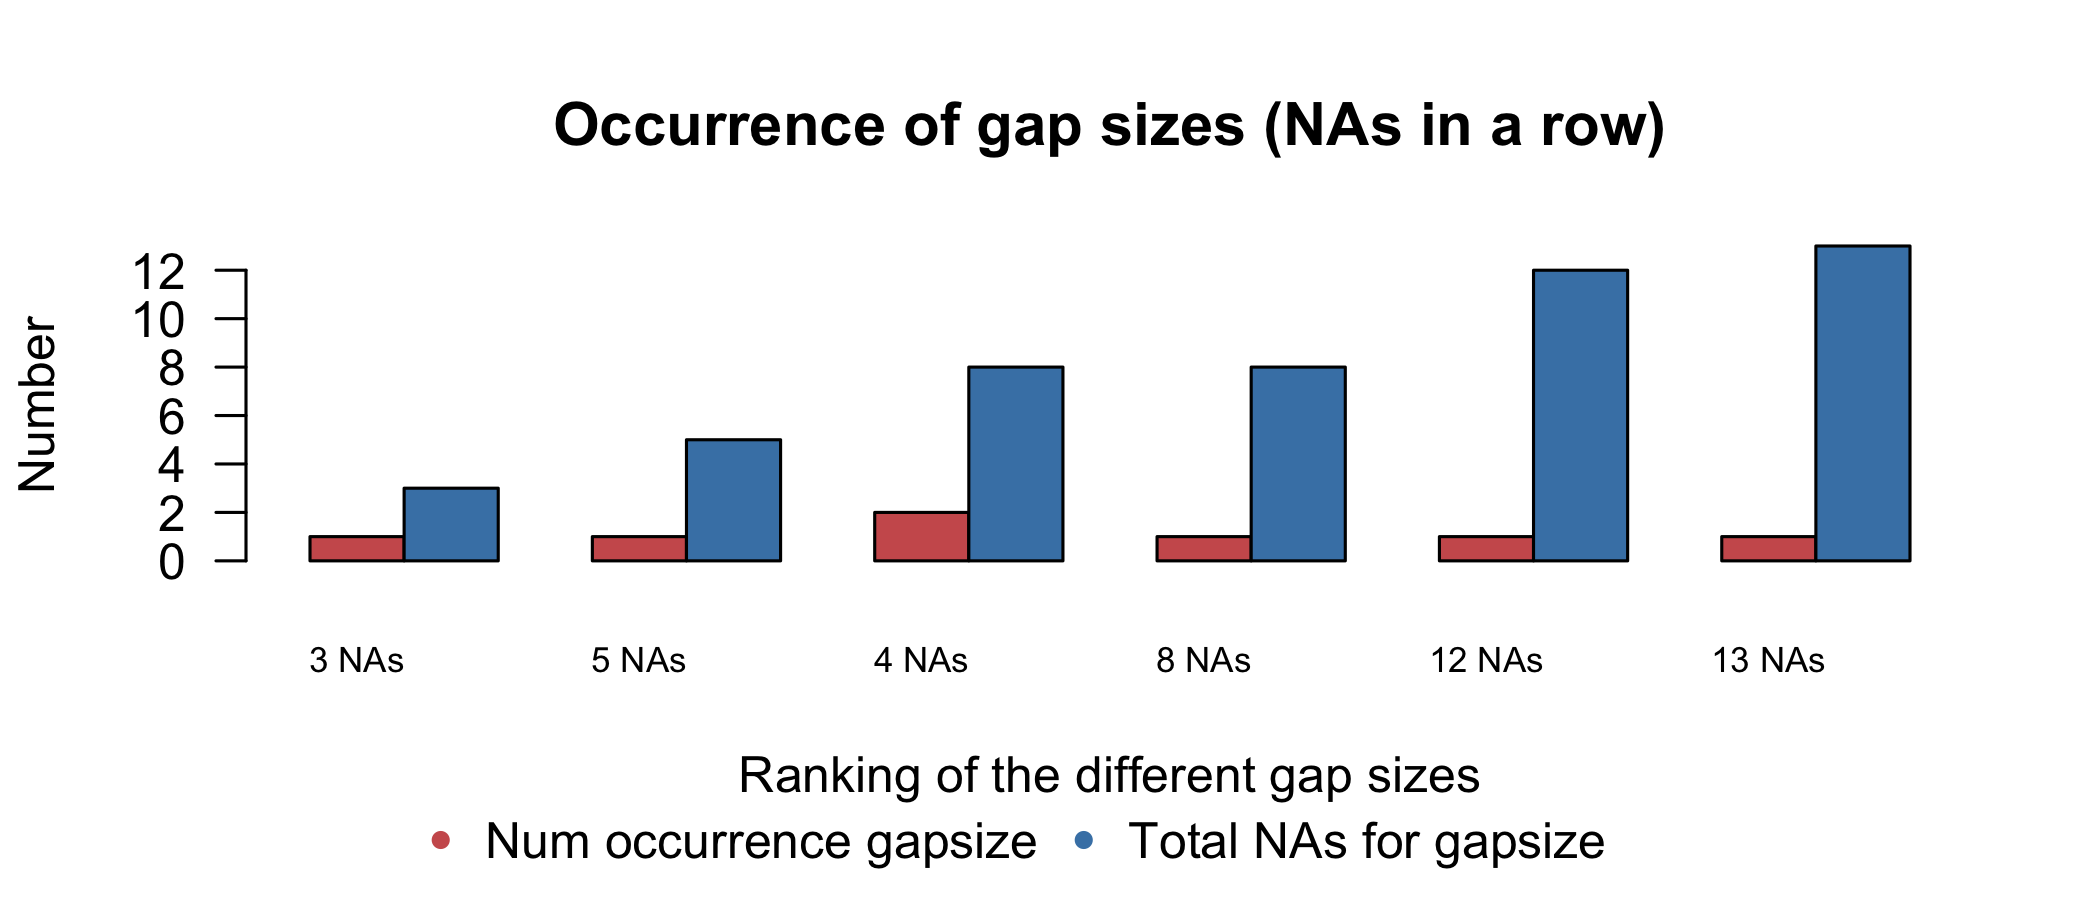 The occurrence plot show the summaries of distinct gap sizes, provided by the imputeTS package. The left-hand bar gives the number of occurrences for each gap size, with the corresponding tallies of NA on the right-hand side.